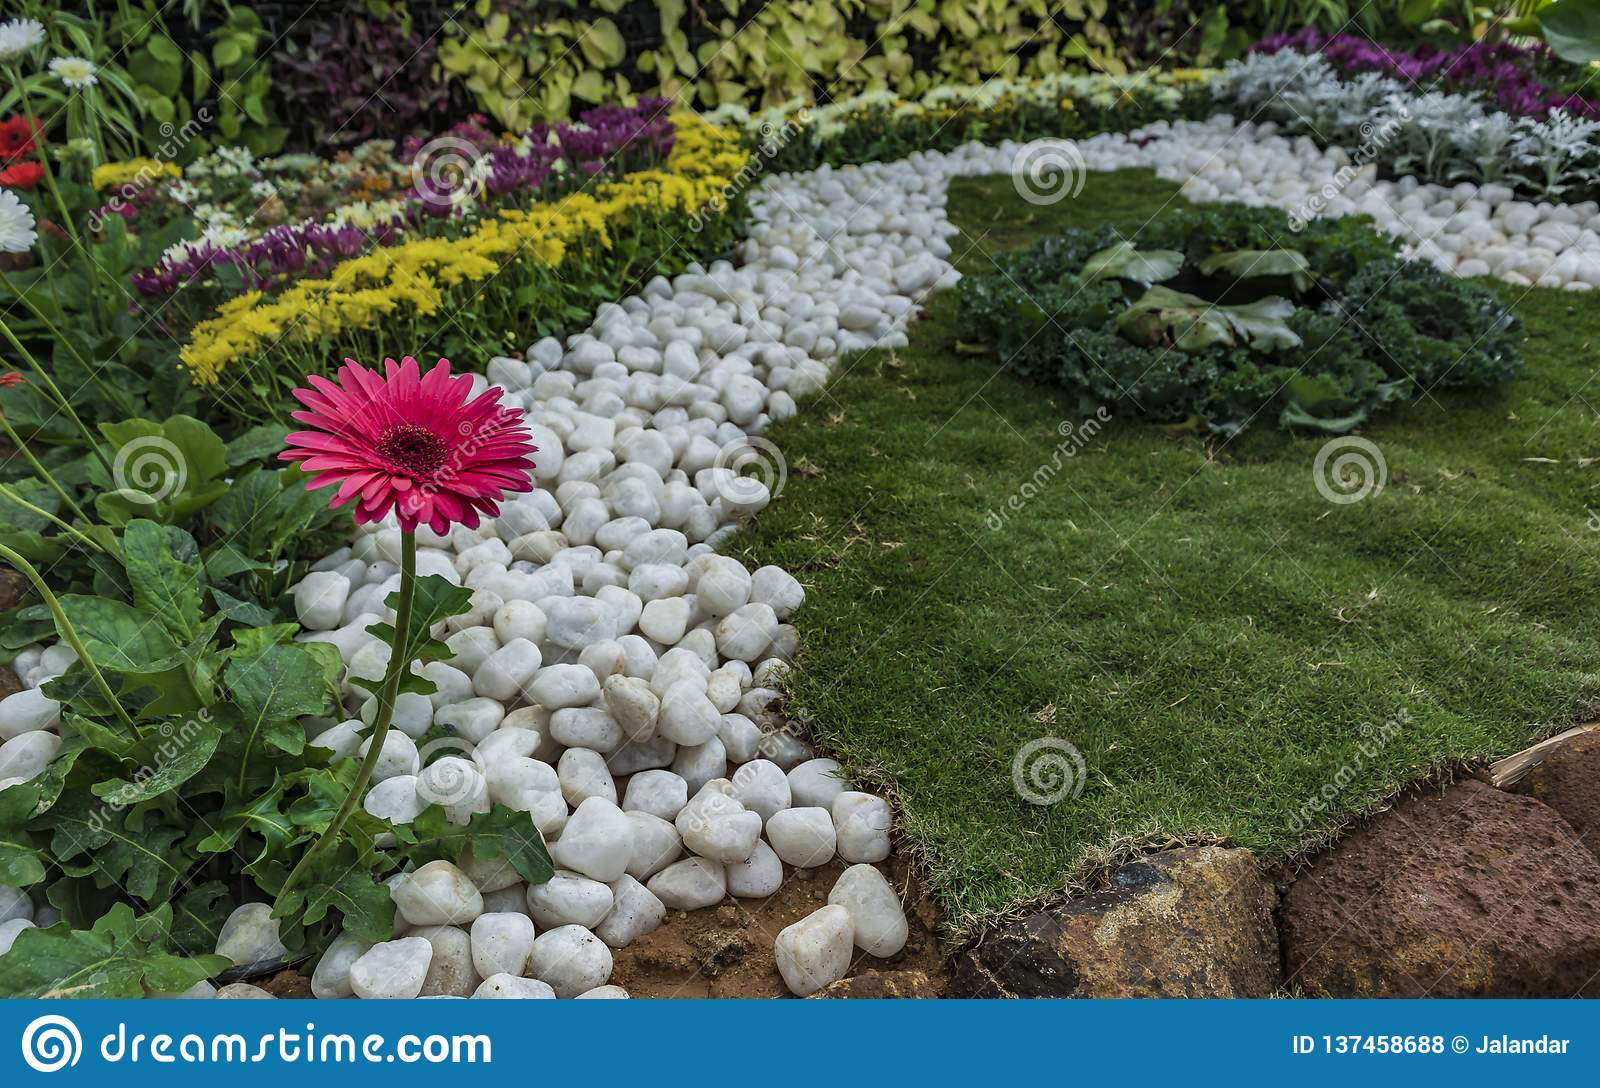 Serenity: Home Garden - White Pebbles, Lawn and Red Daisy flower